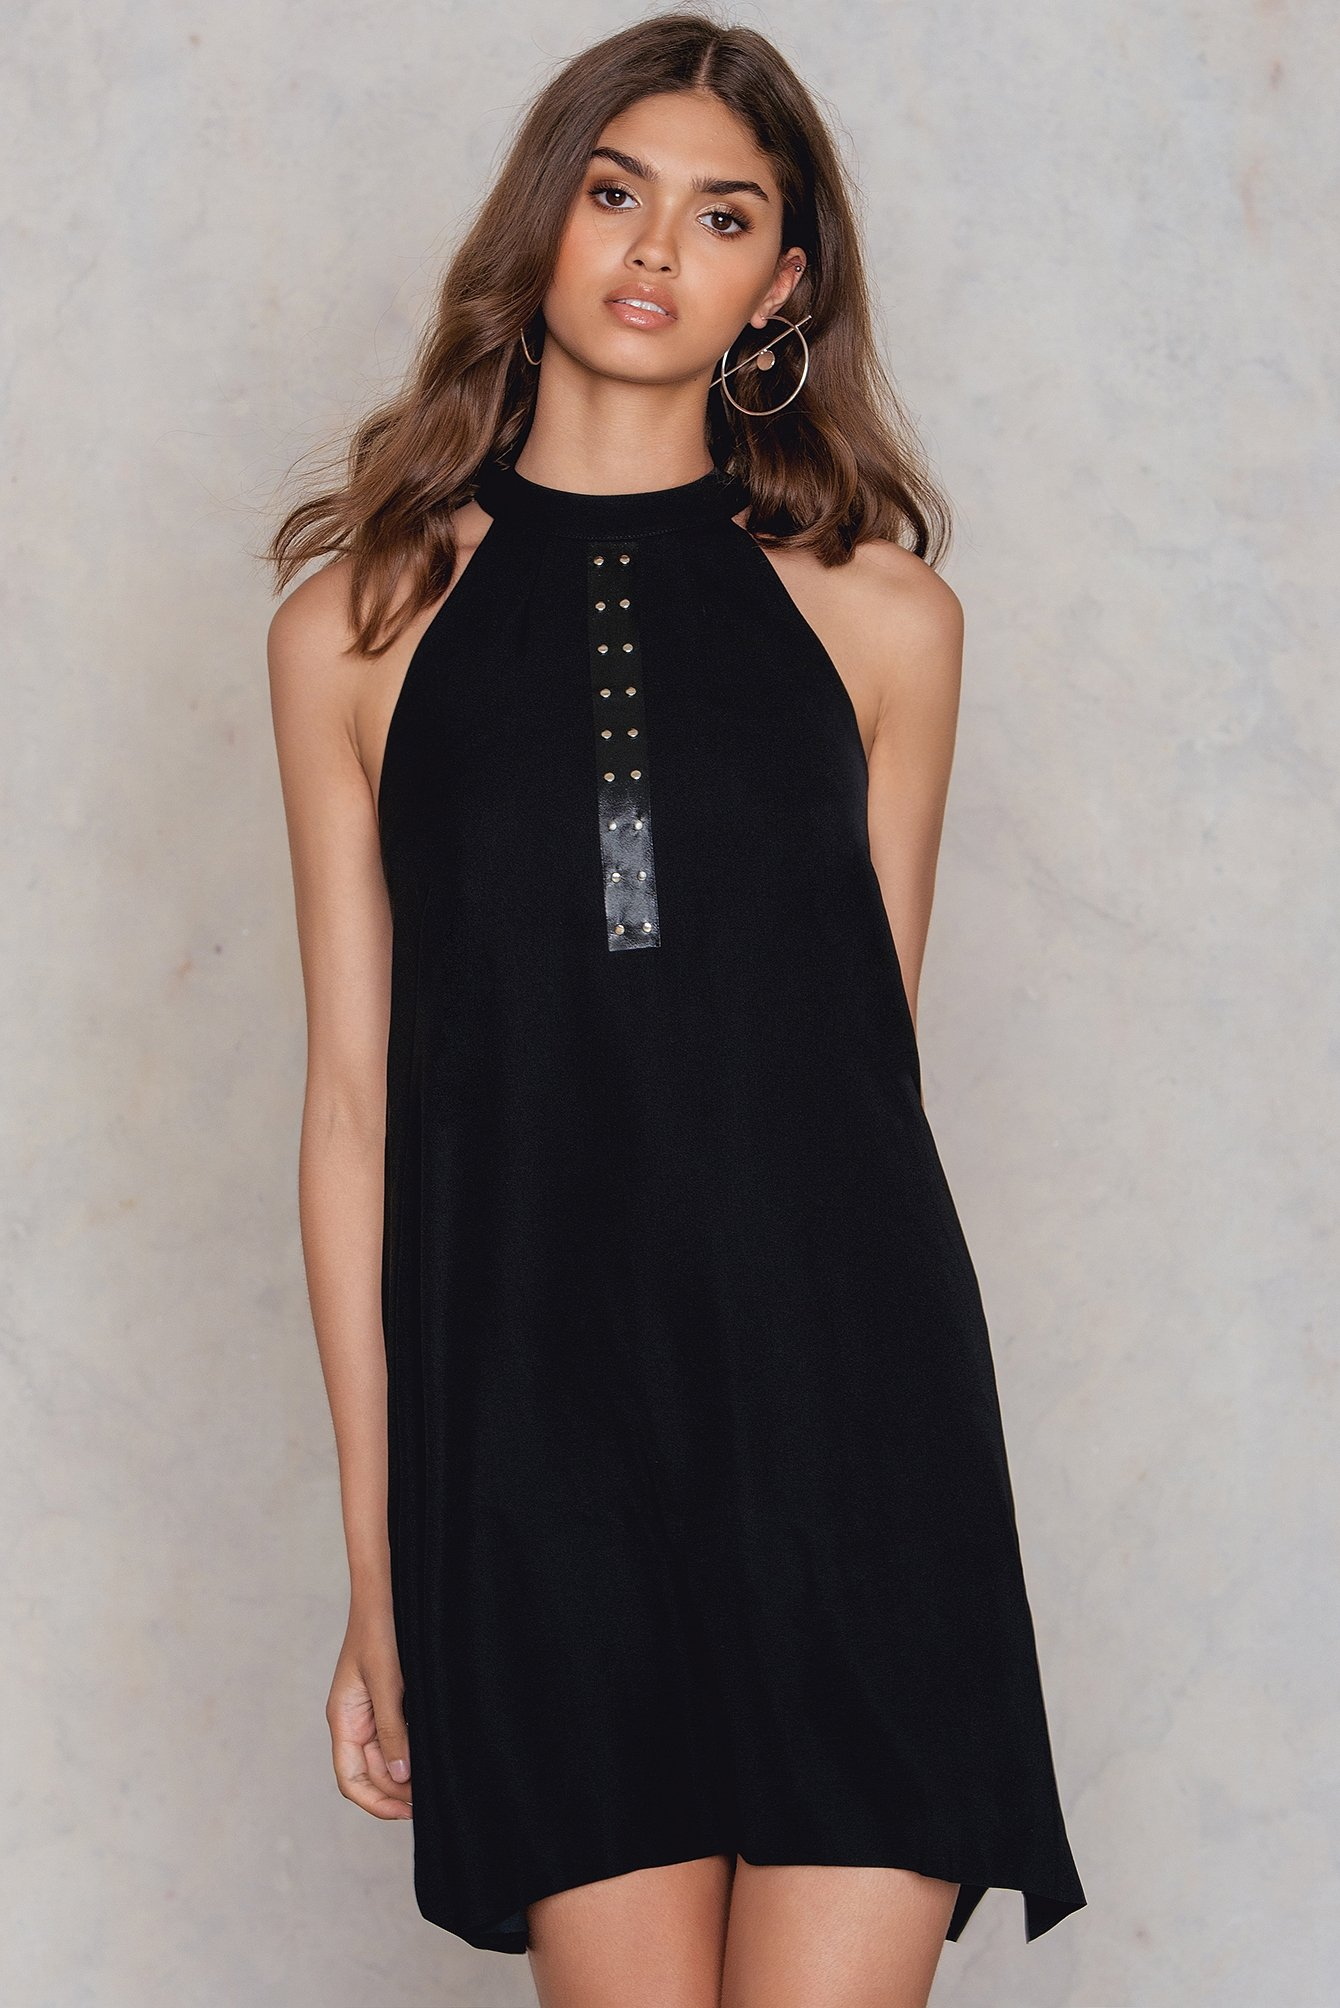 CK Black Delise Dress